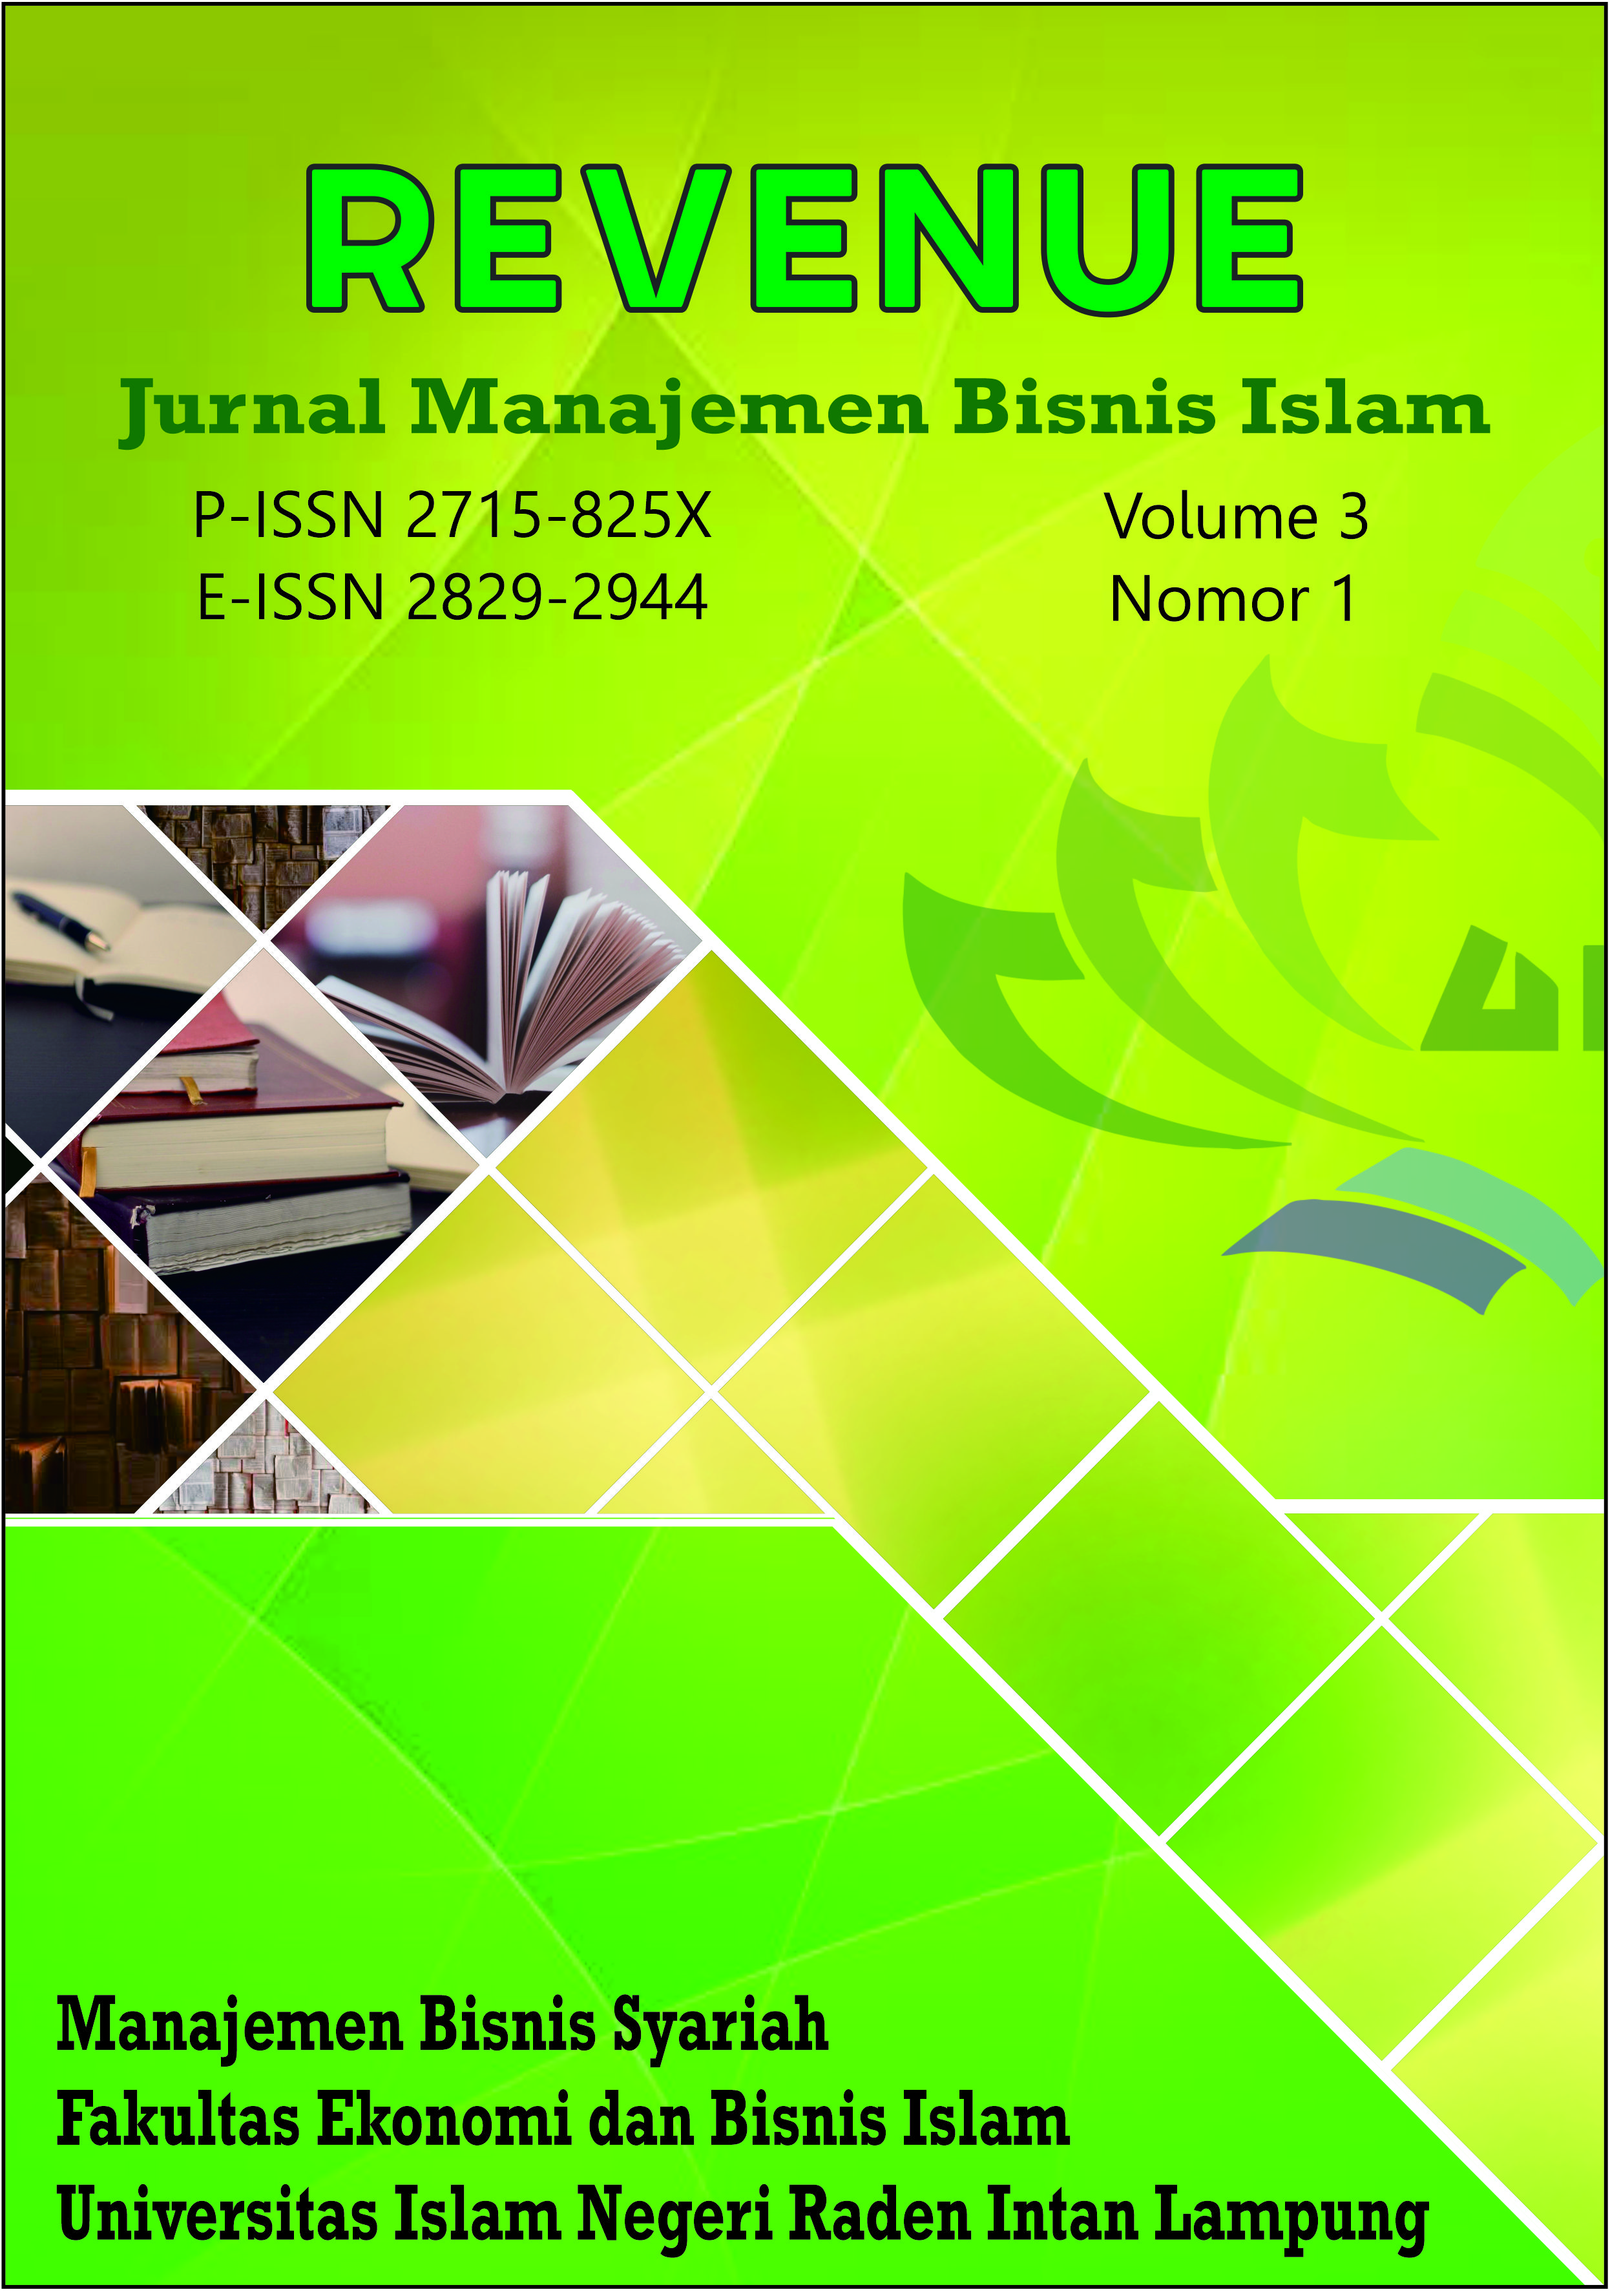 AL-NIZAMIYA (Sharia Economics and Business Management Studies Journal)